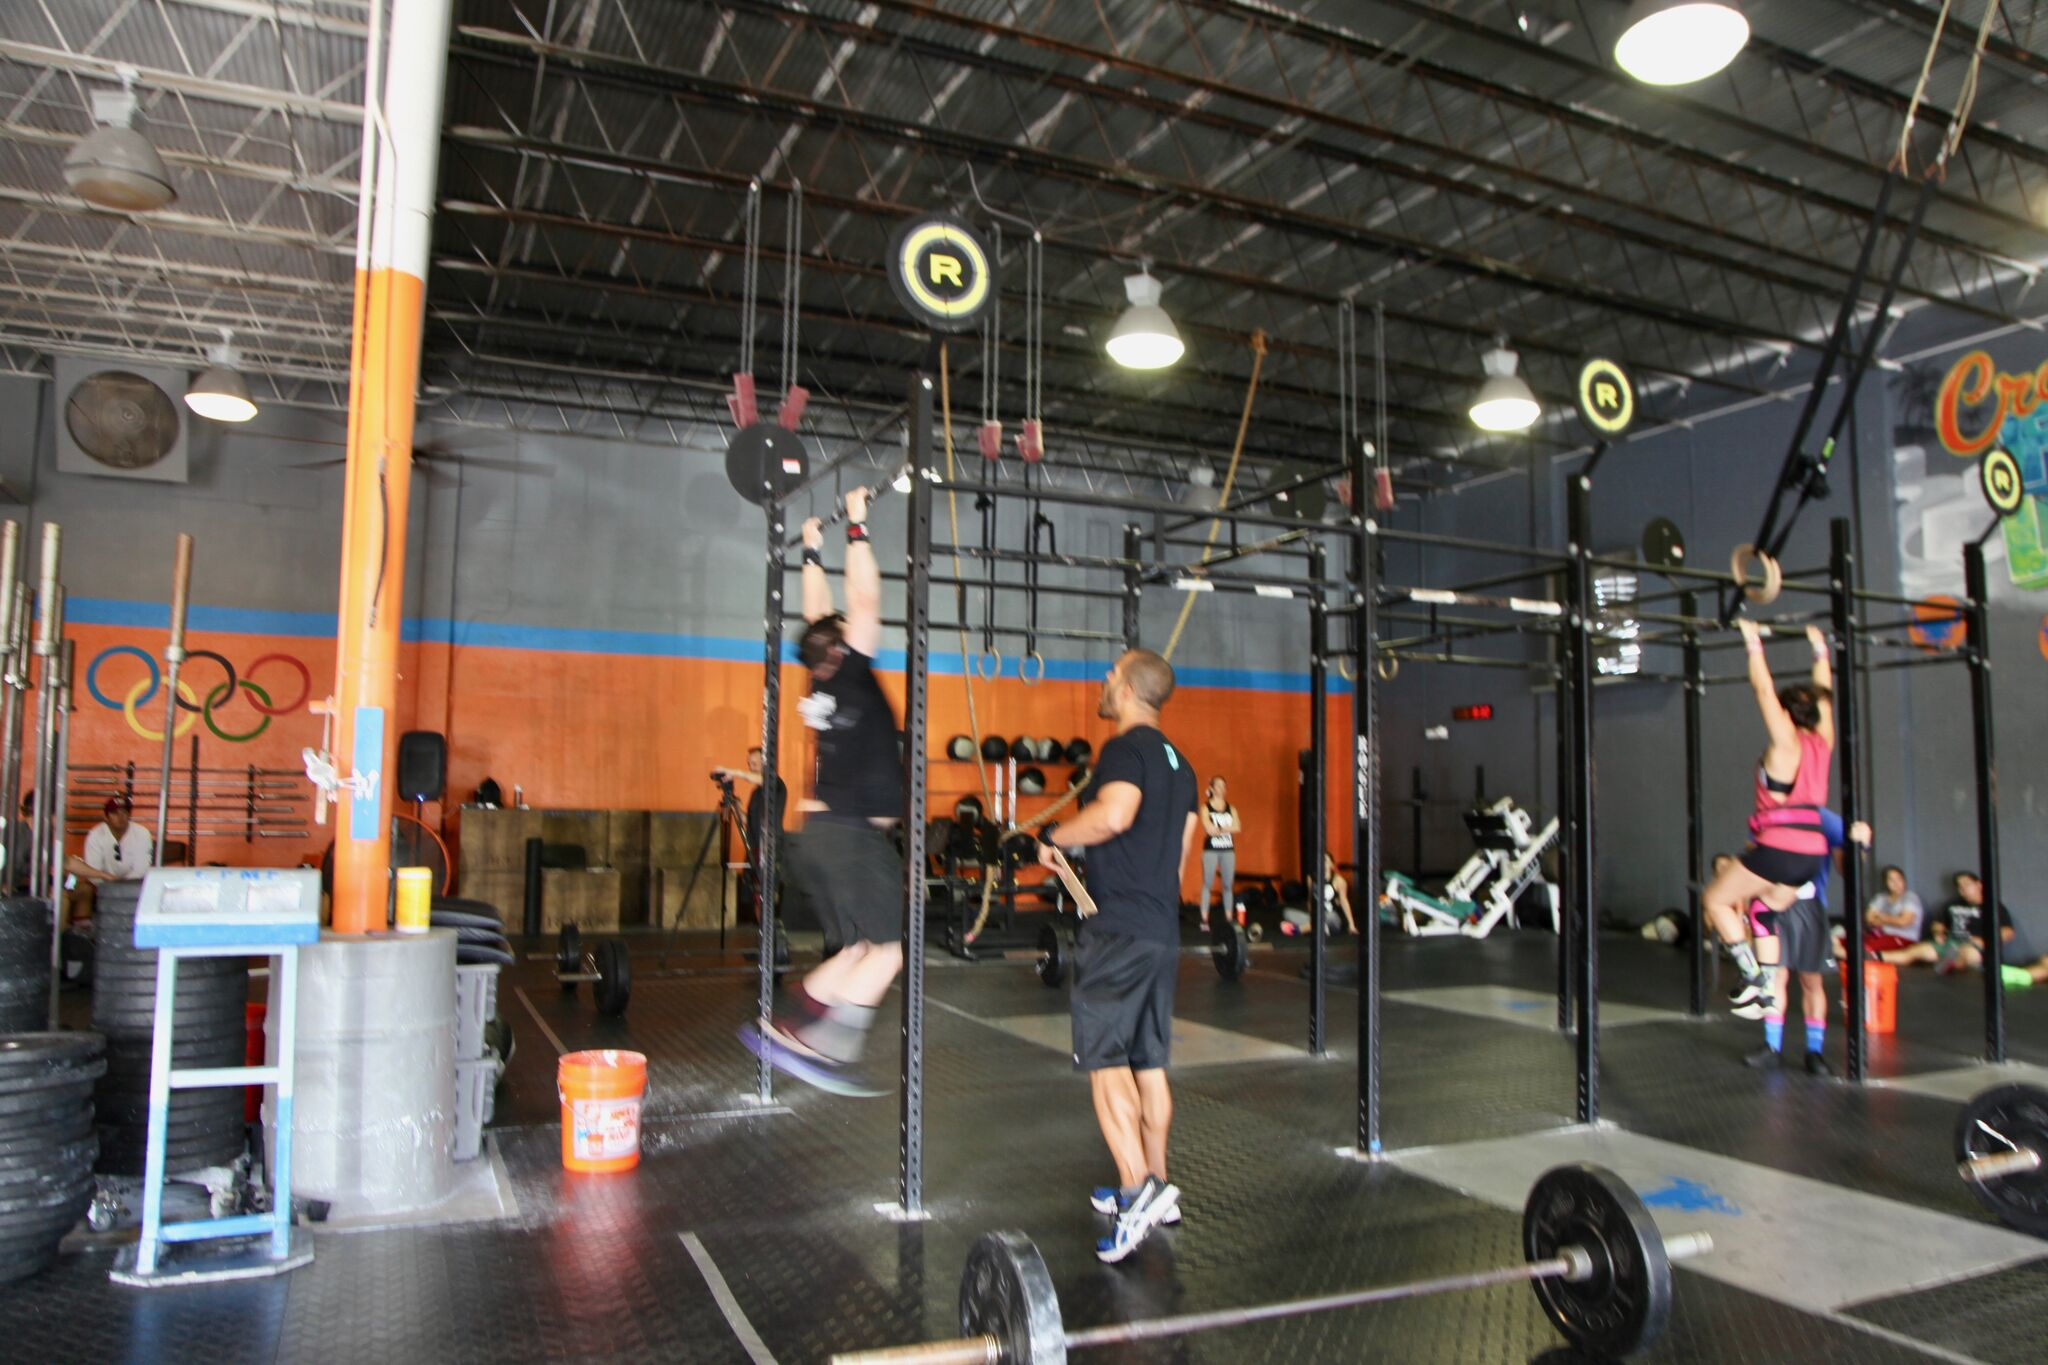 Crossfit gyms